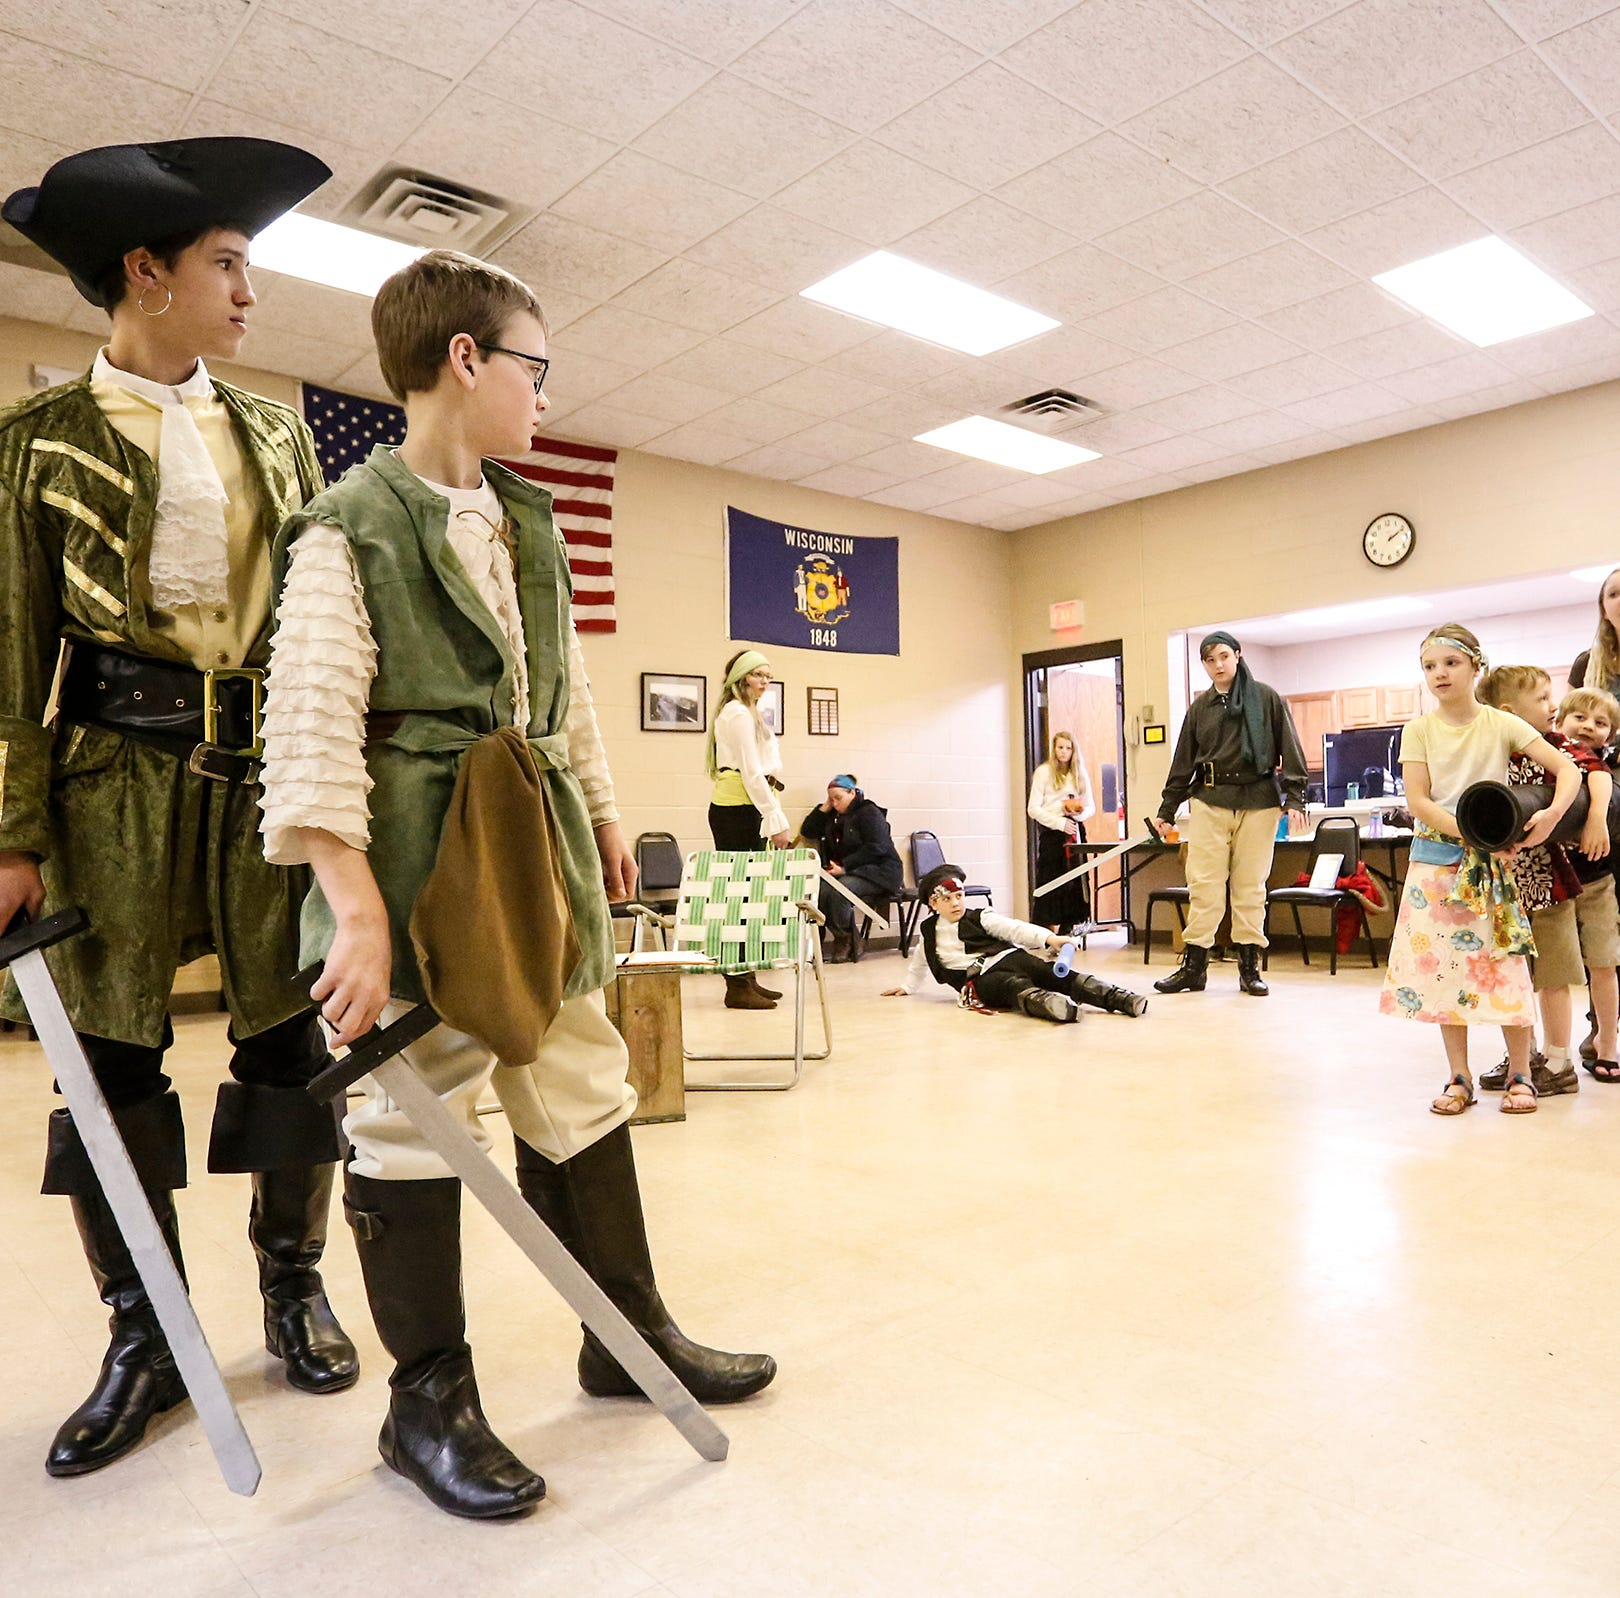 Homeschool Performing Arts Club brings Jolly Roger and the Pirate Queen to life